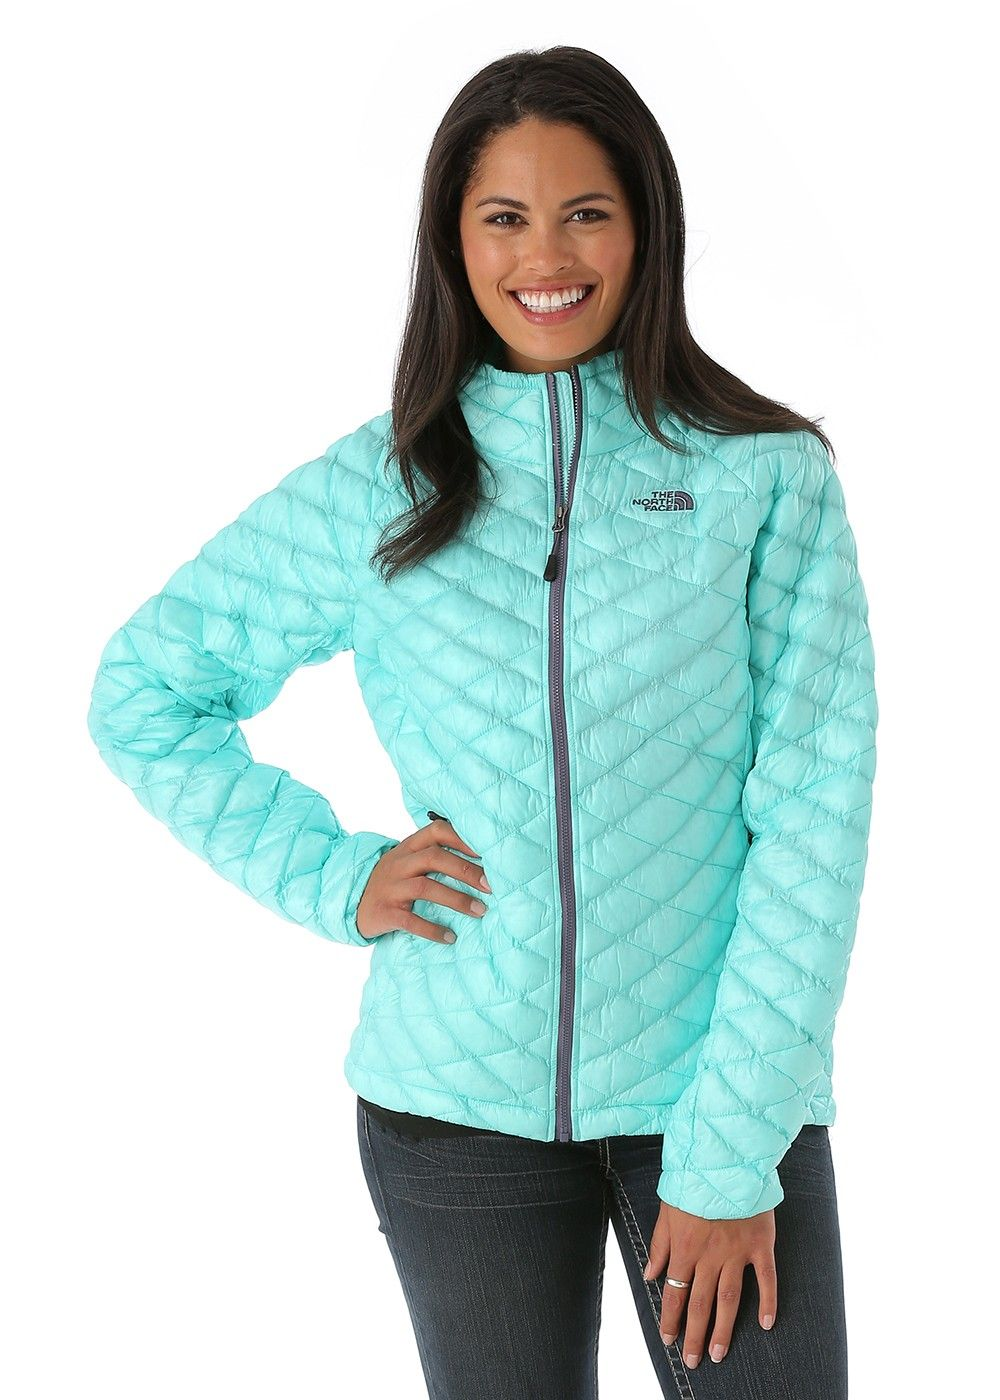 2b2b0f890 The North Face Women's Thermoball Full Zip Jacket (Mint Blue ...